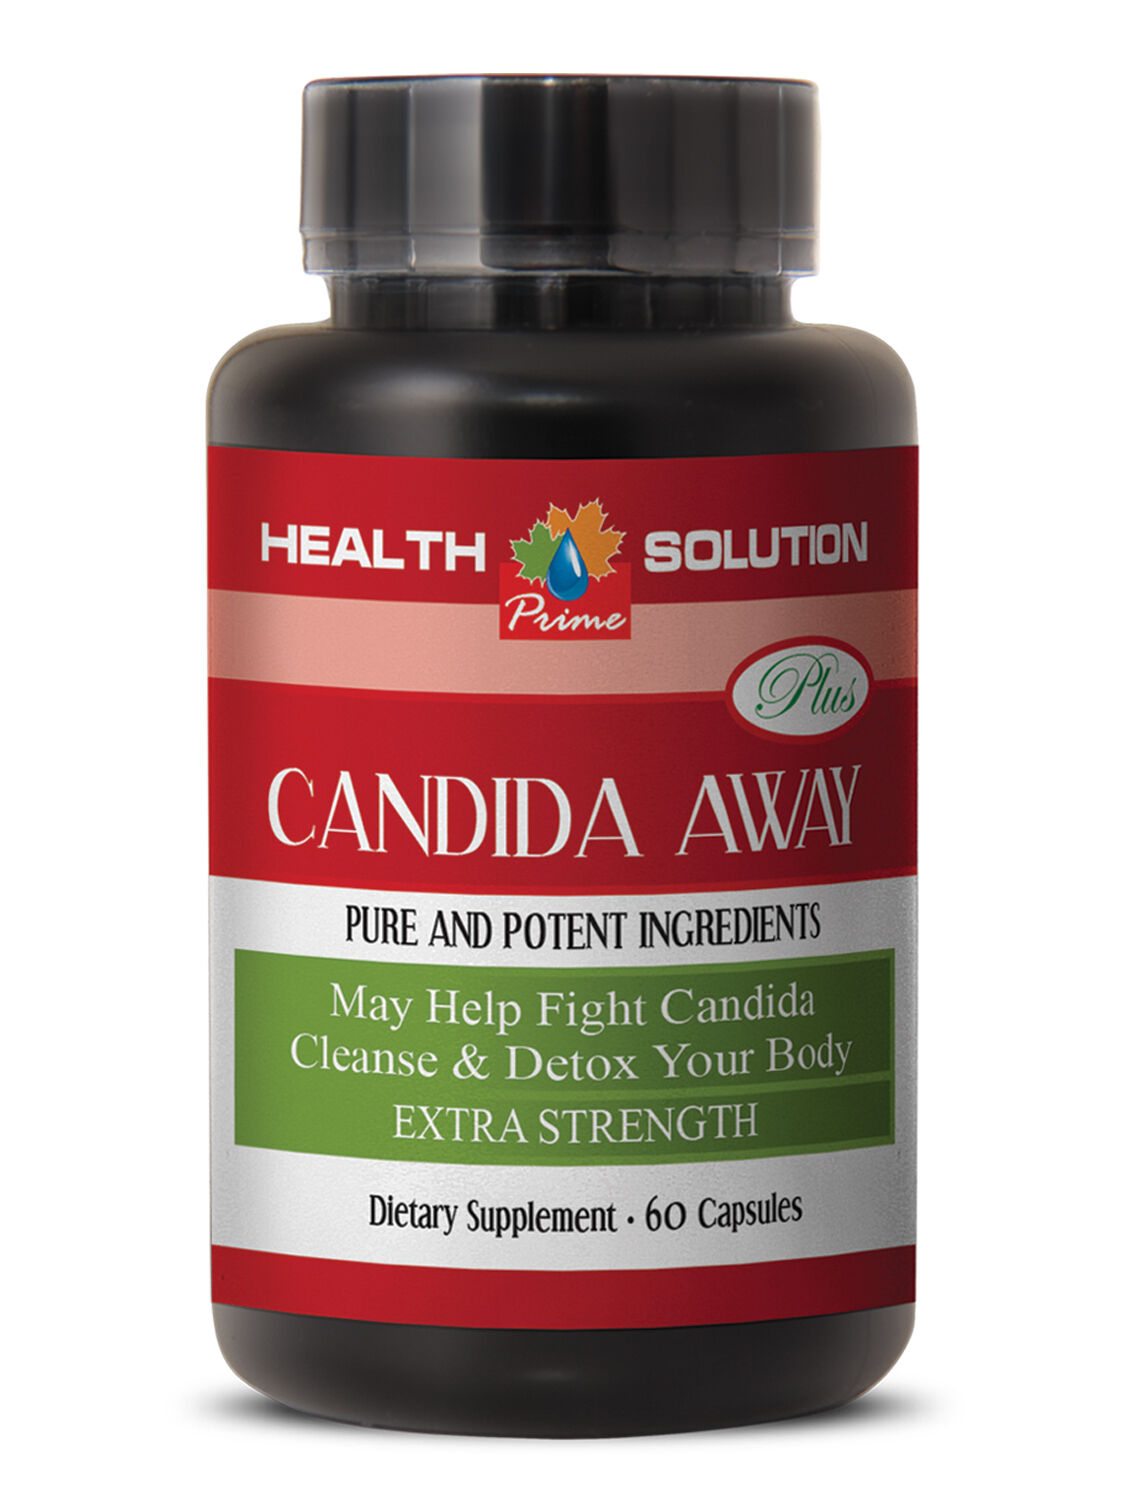 INGREDIENT QUALITY - CANDIDA AWAY - cleanses & detoxes your